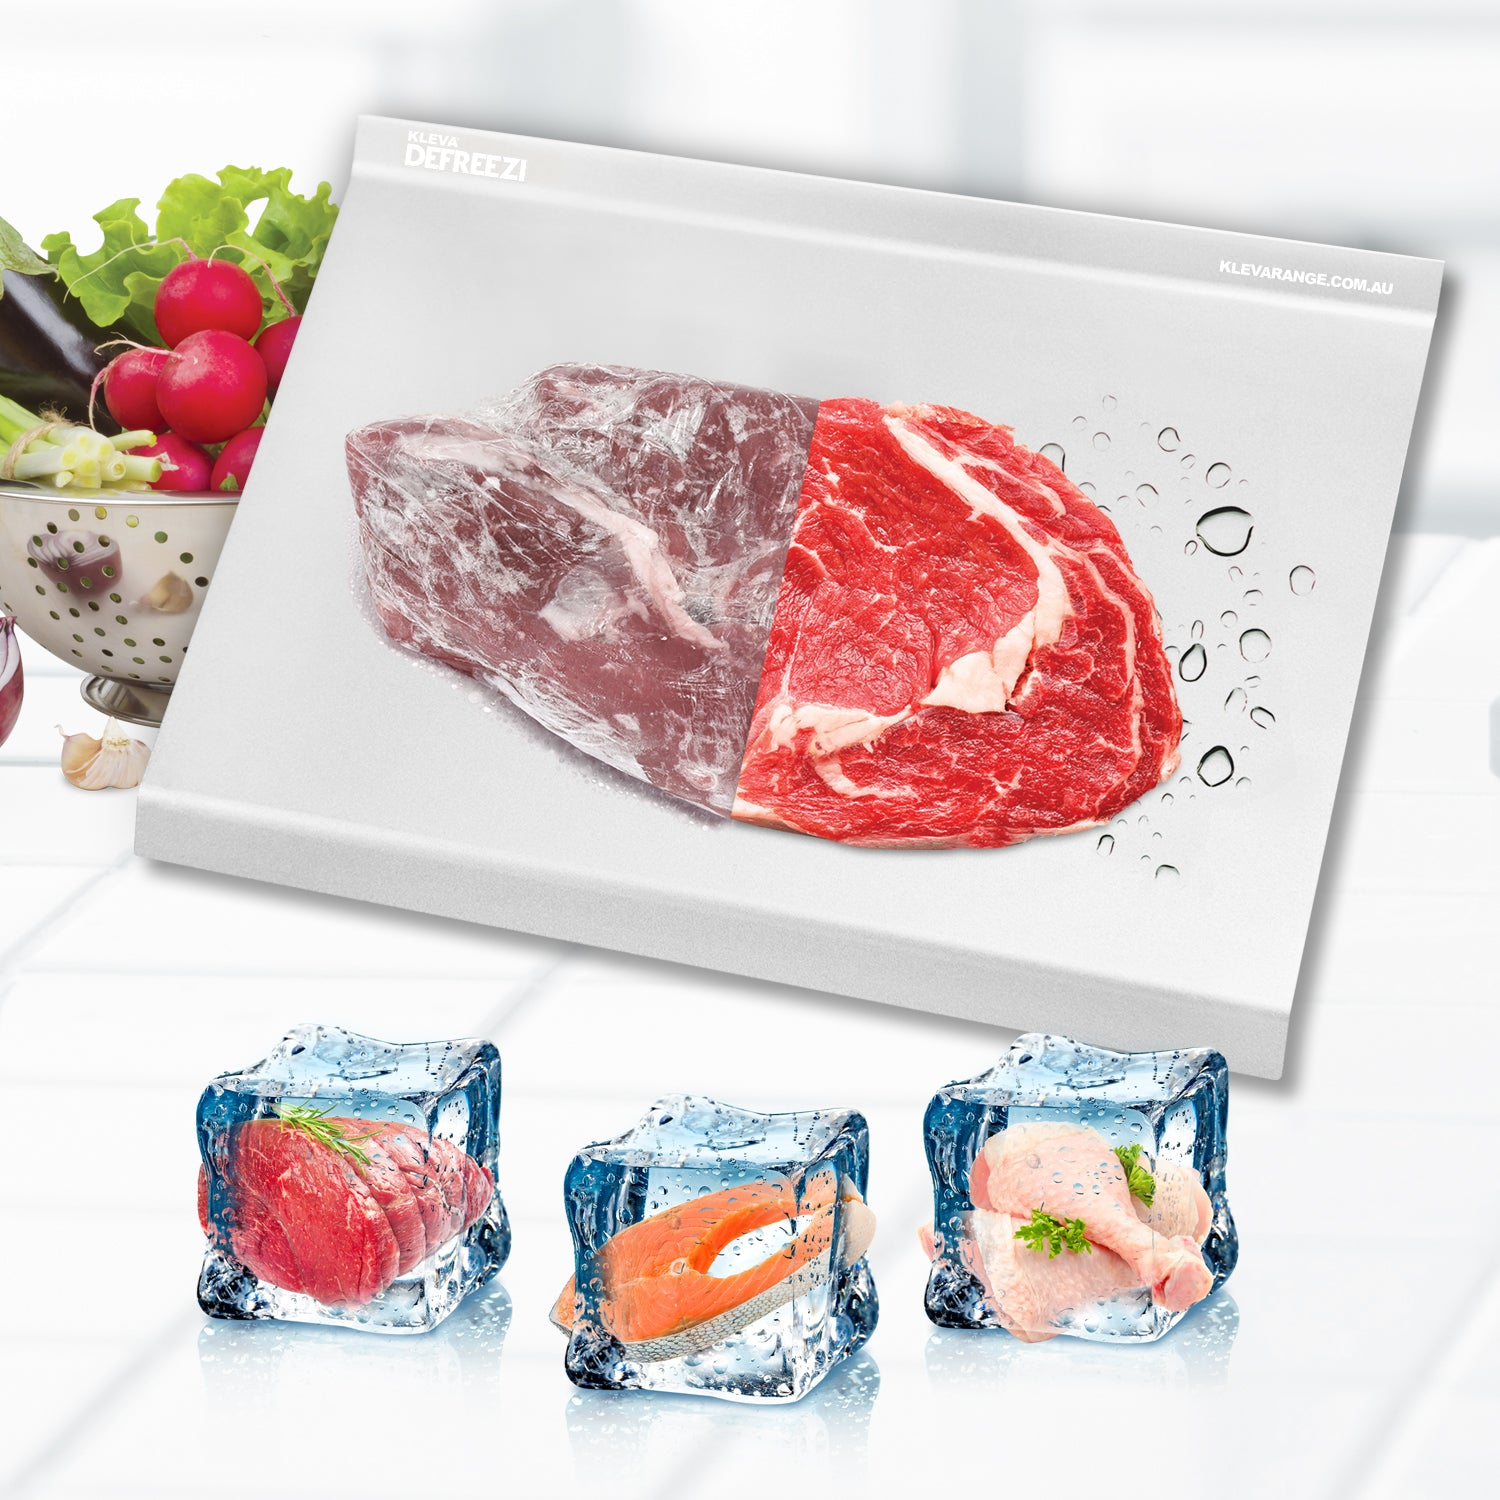 Kleva Defreezi® Defrosting Tray Thaw Meat Up To 5X FASTER! + 60 Day Guarantee - Double Offer!